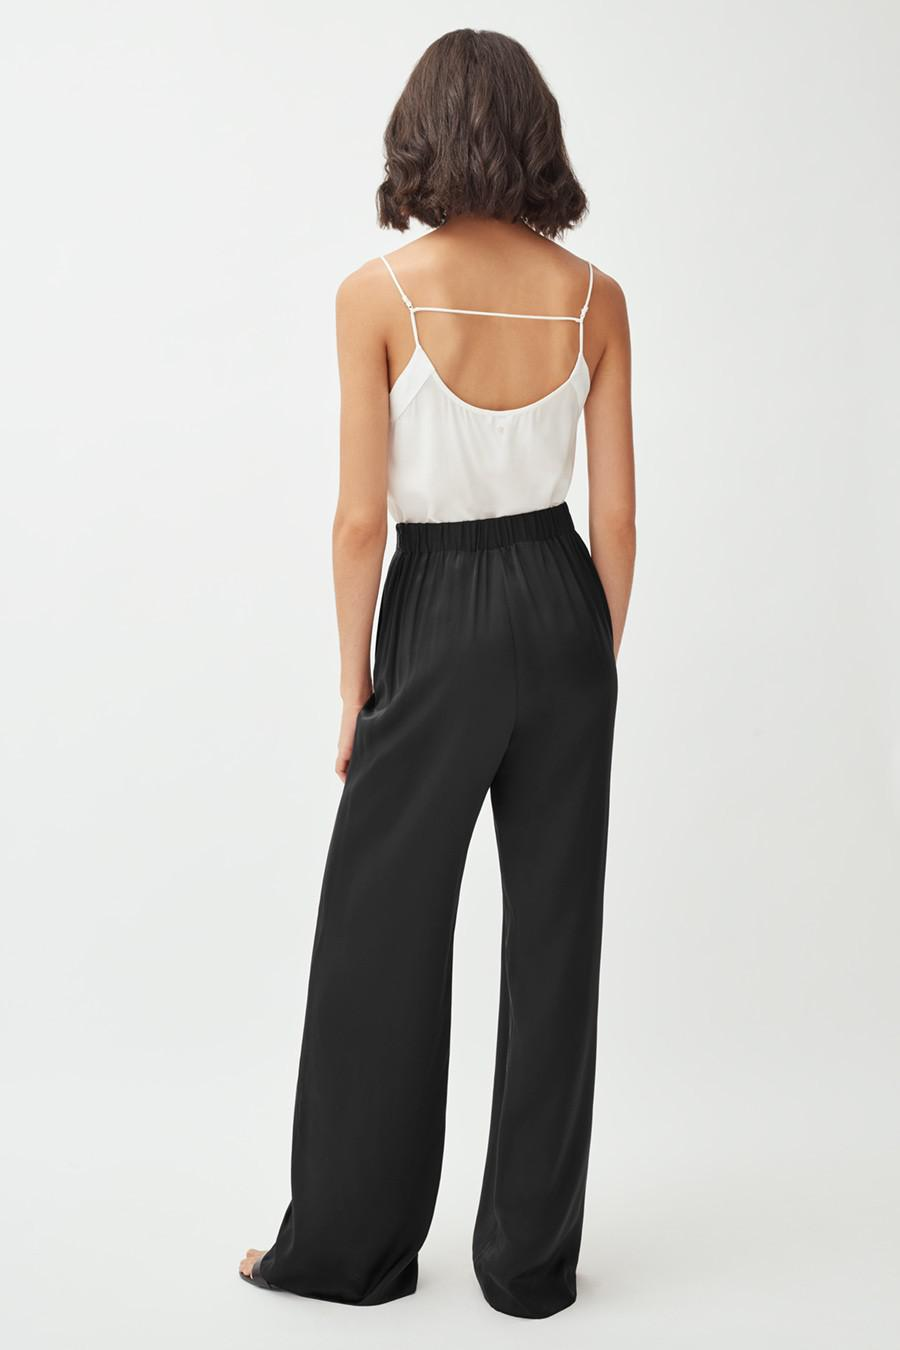 Women's Charmeuse Wide-Leg Pant in Black | Size: Large | Silk Charmeuse by Cuyana 2